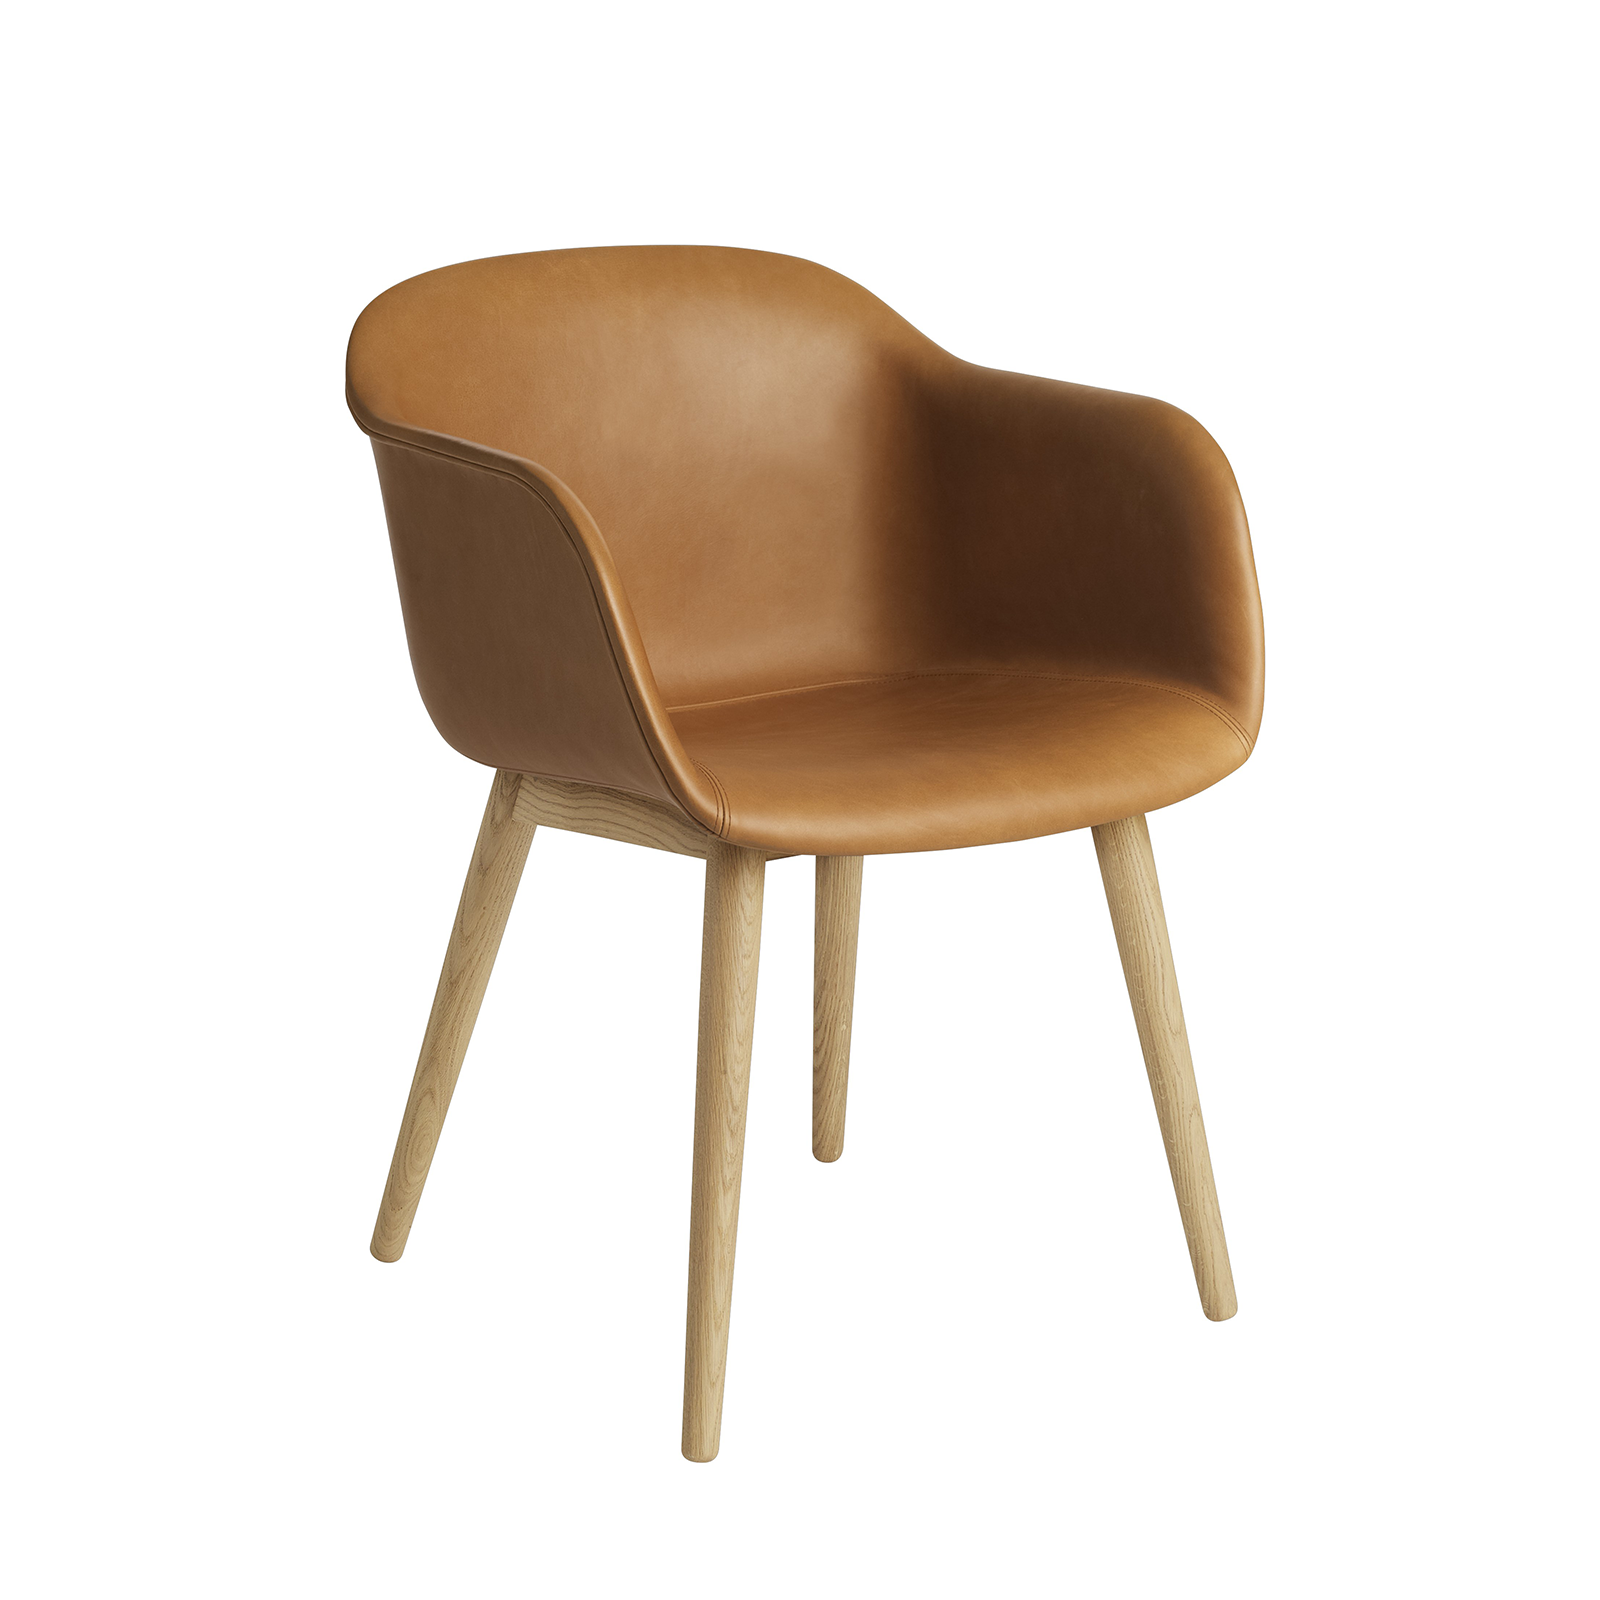 Muuto Fiber Armchair with Wood Base Leather Upholstered 木纖 扶手椅 橡木椅腳 皮革包覆版